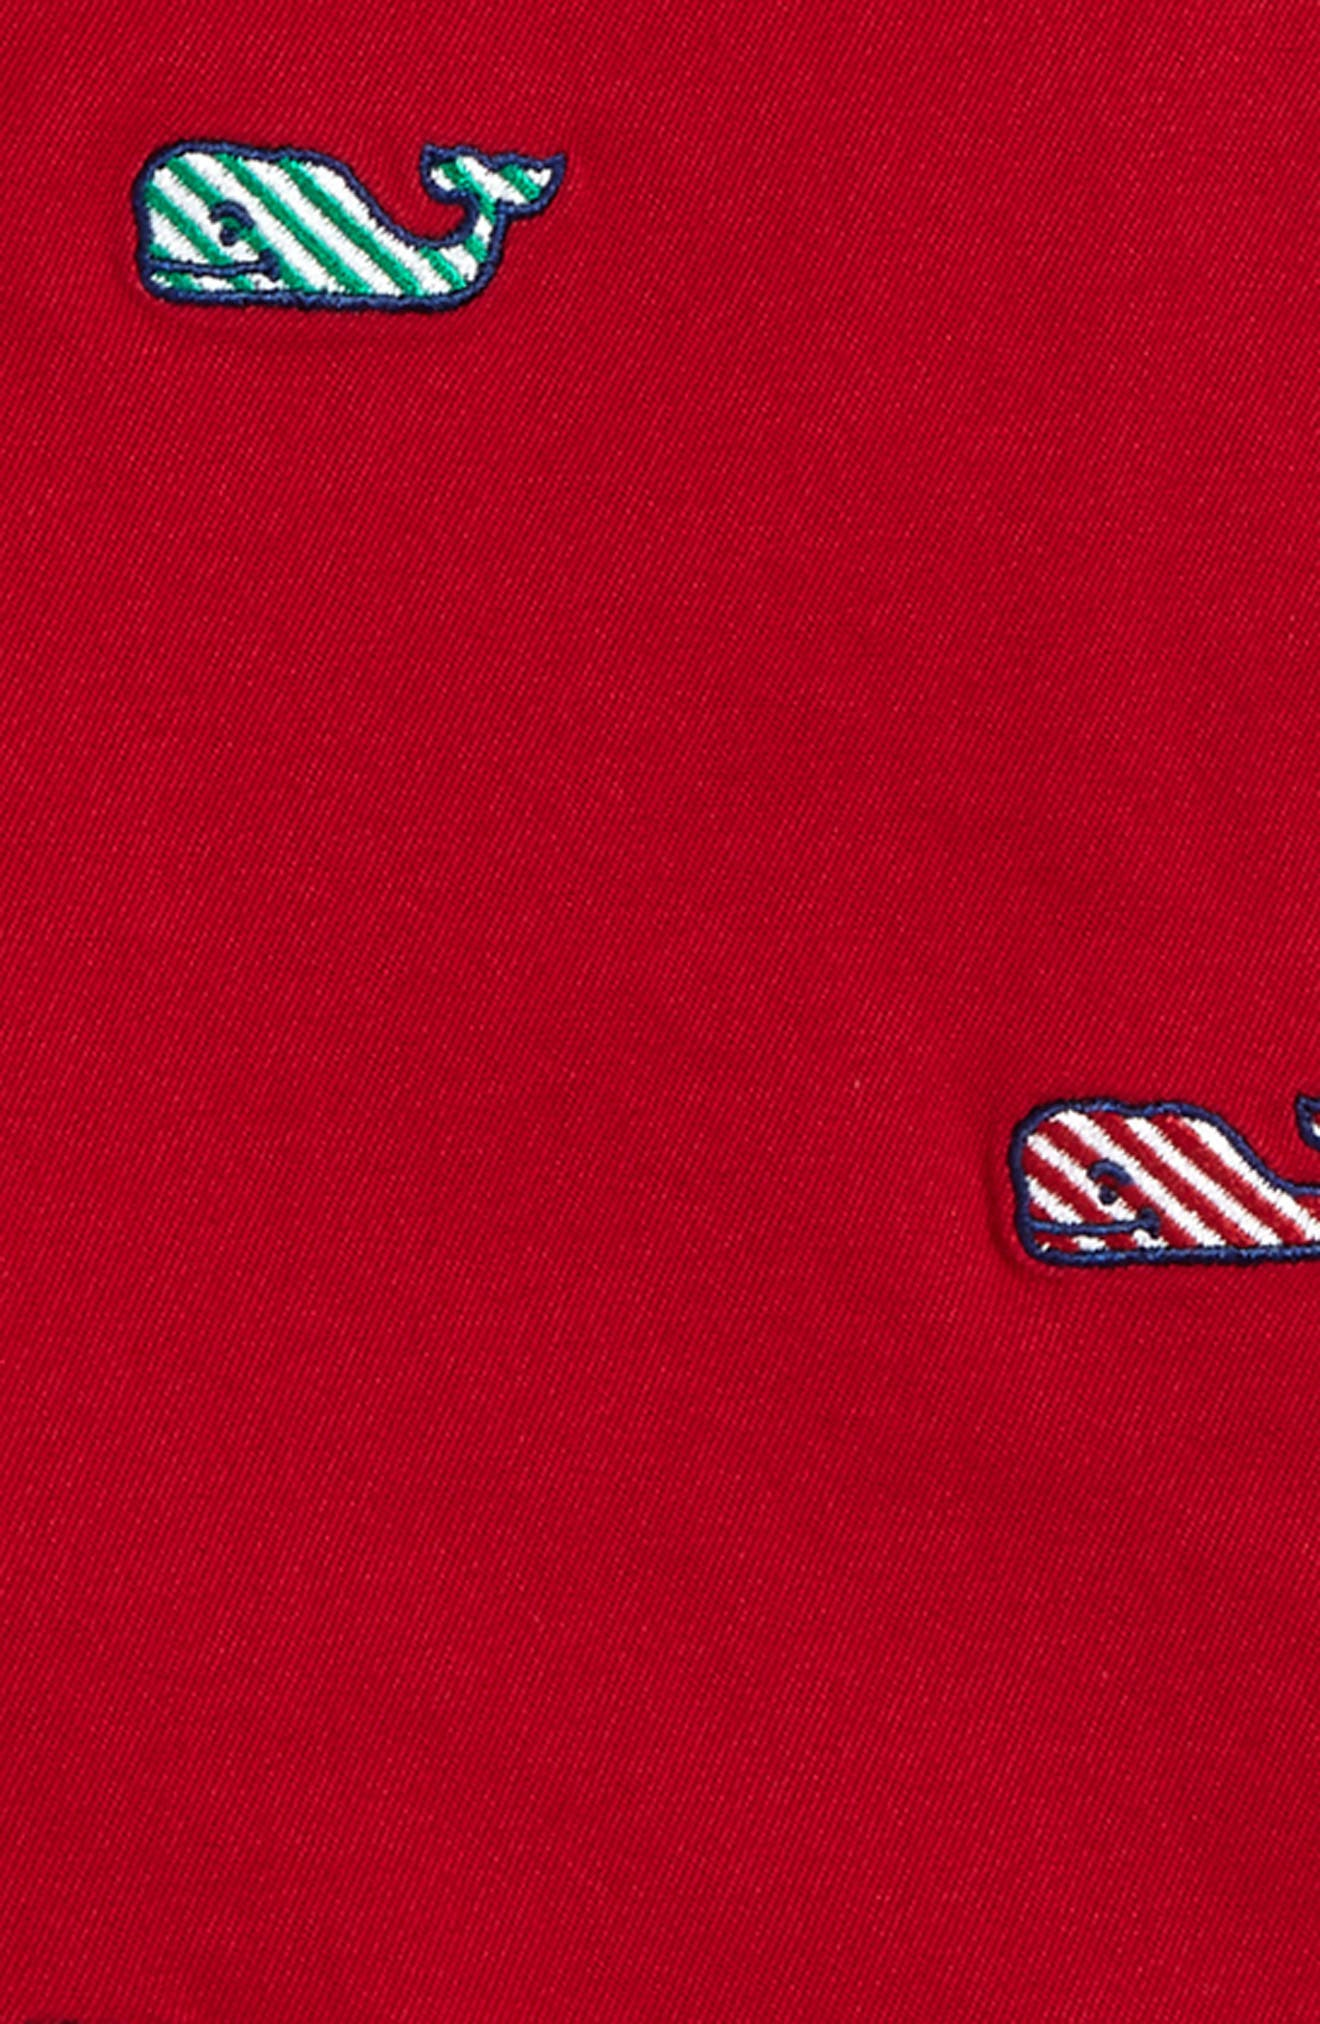 Candy Cane Whale Breaker Shorts,                             Alternate thumbnail 2, color,                             Lifeguard Red